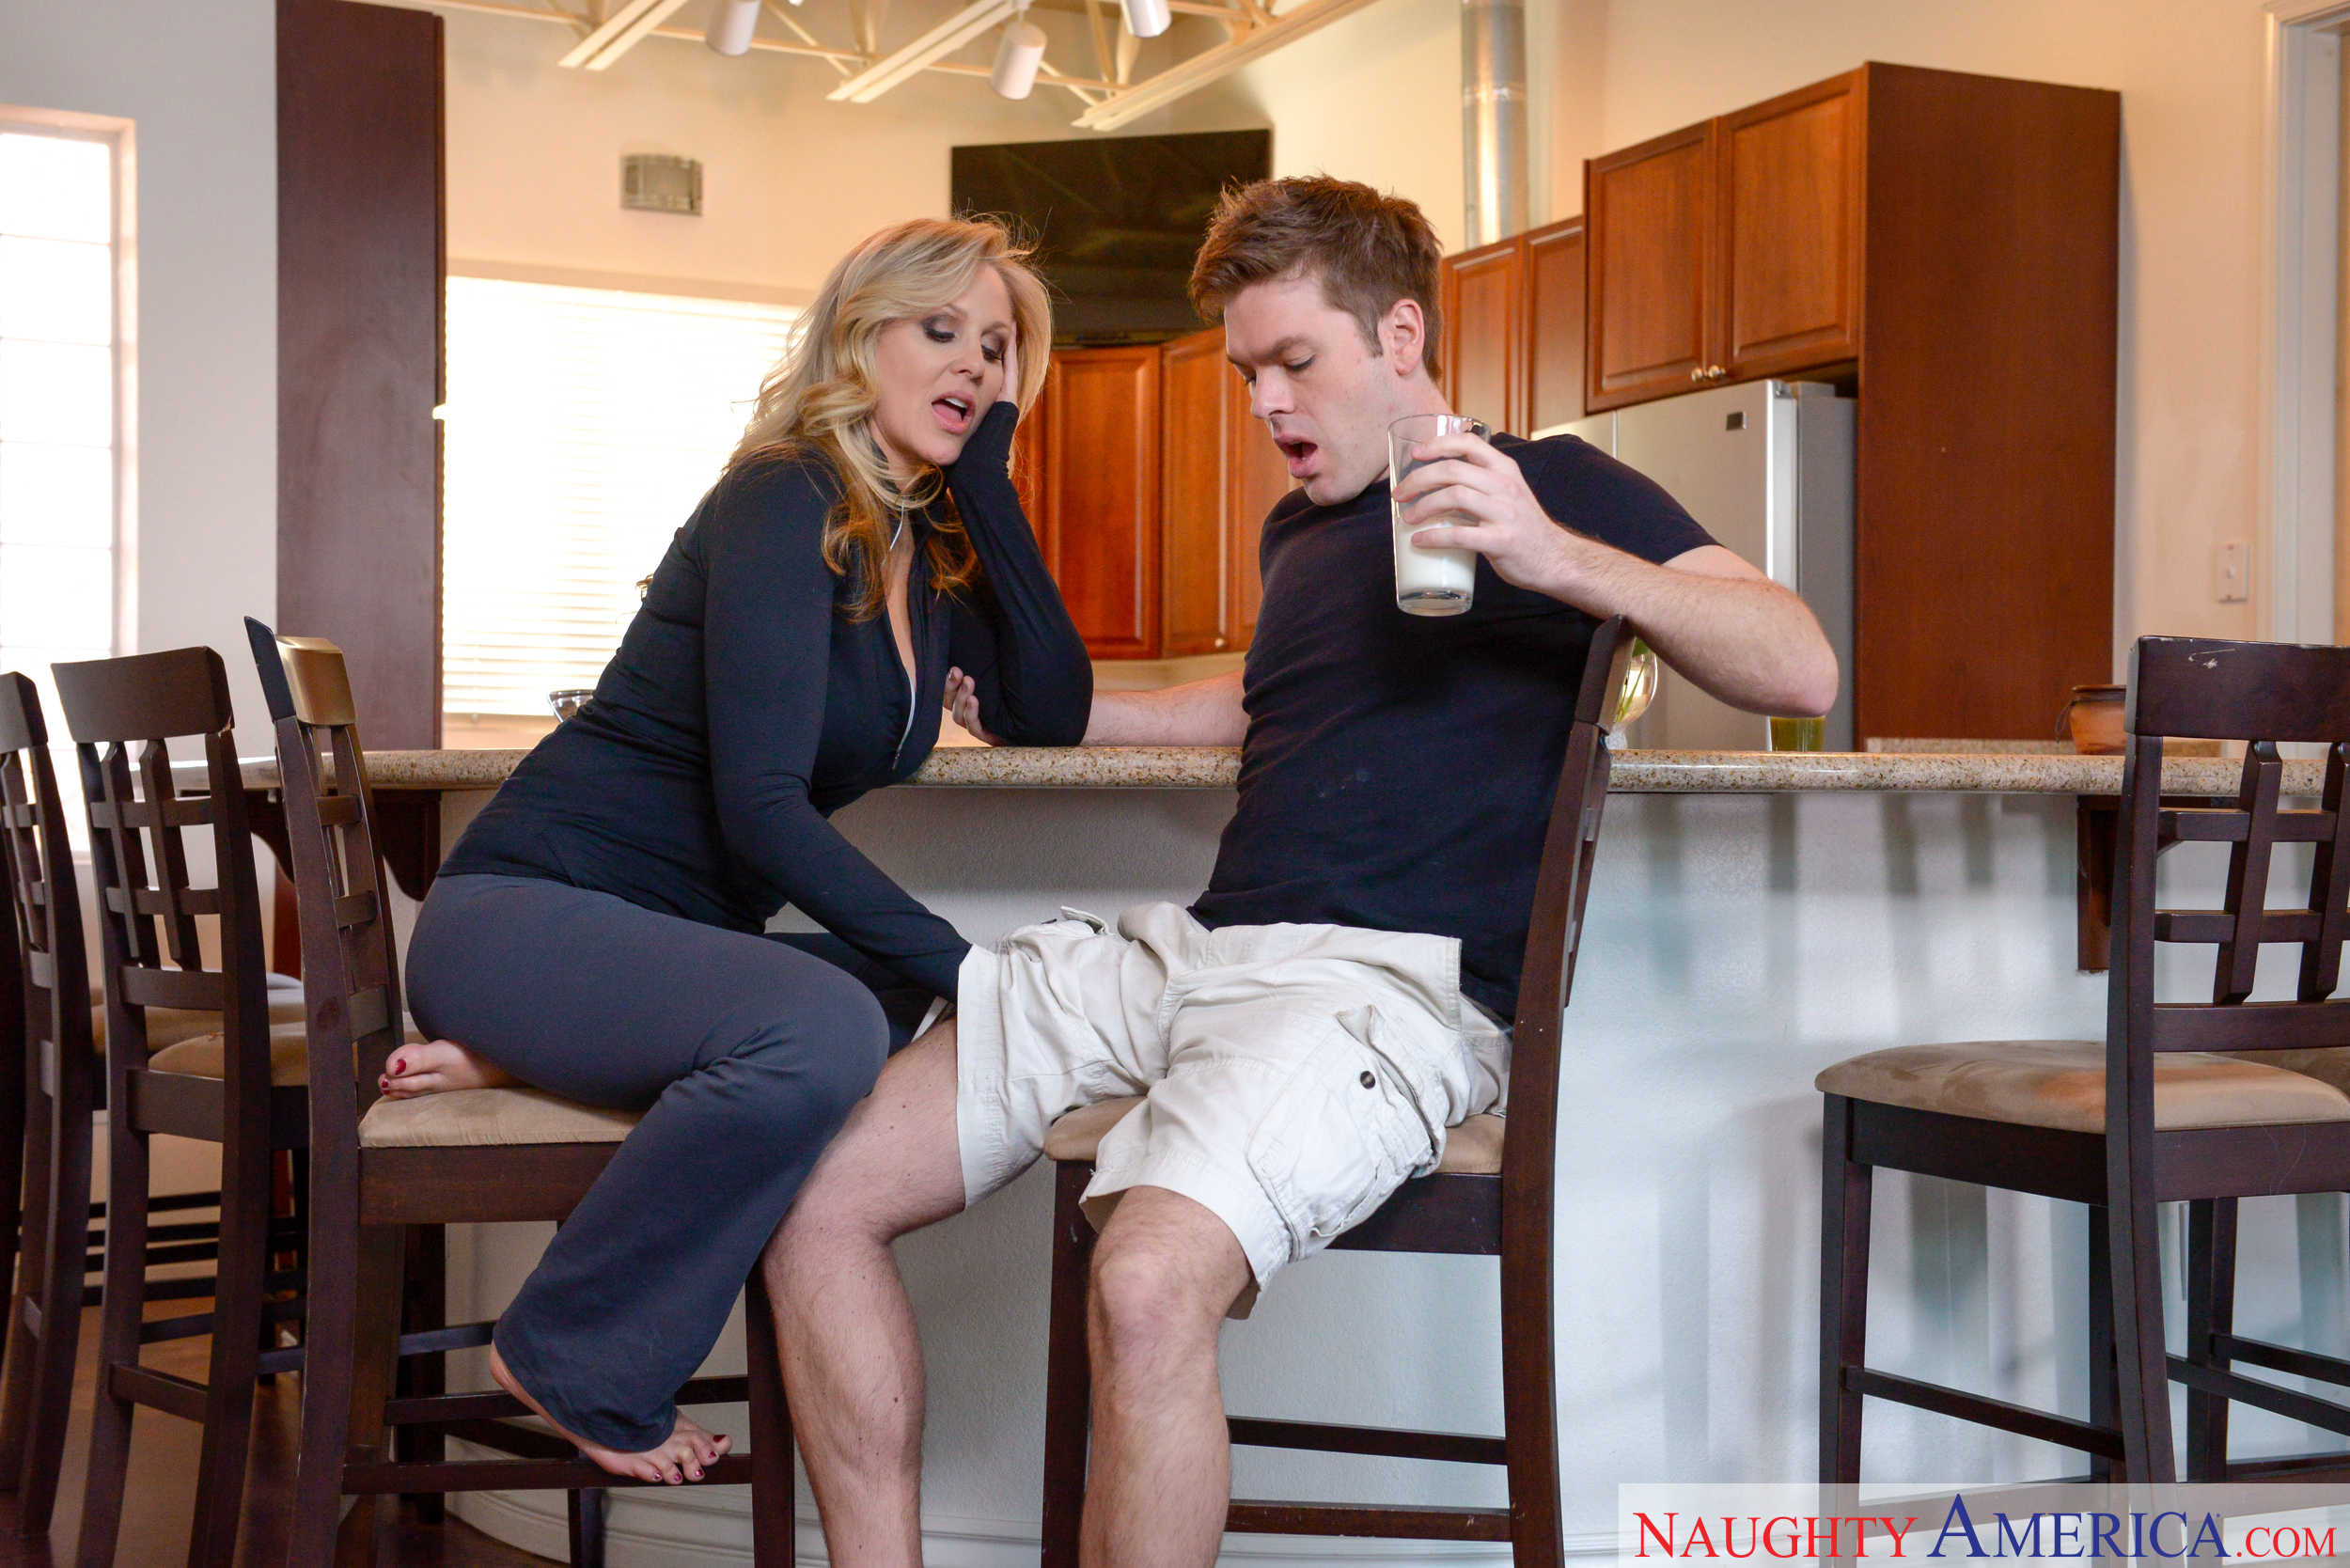 My friends real hot mom Naughty America Julia Ann In My Friend S Hot Mom With Ryan Ryder Milf Porn Photos And Tube Videos